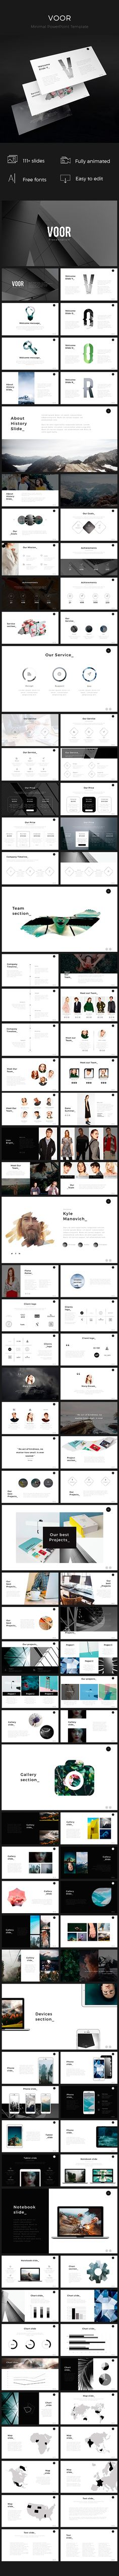 Clean & Trend Voor PowerPoint Template  #design #gallery • Download ➝ https://graphicriver.net/item/clean-trend-voor-powerpoint-template/18661779?ref=pxcr